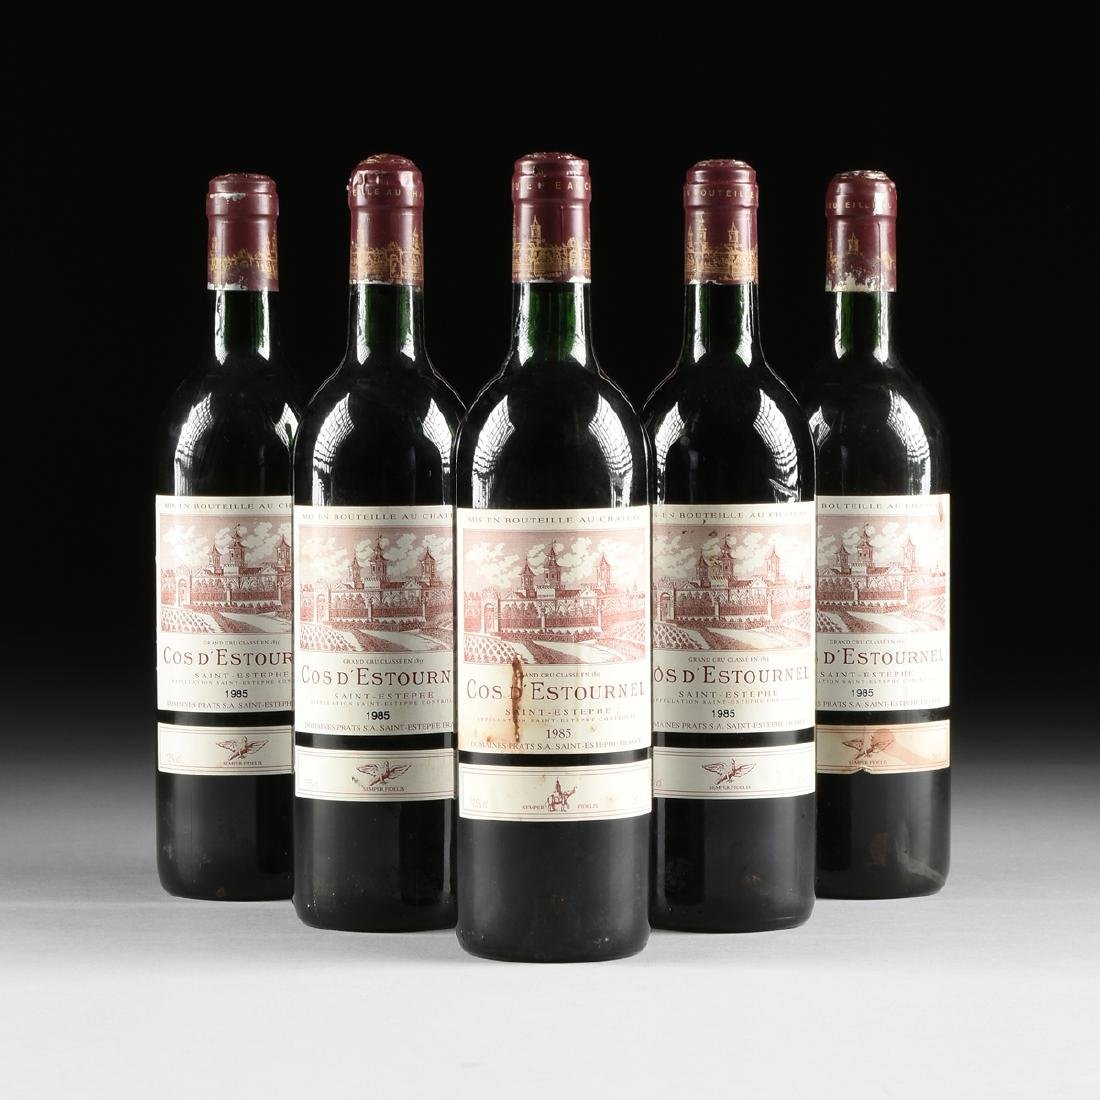 A GROUP OF SIX BOTTLES OF 1985 SAINT ESTÉPHE COS